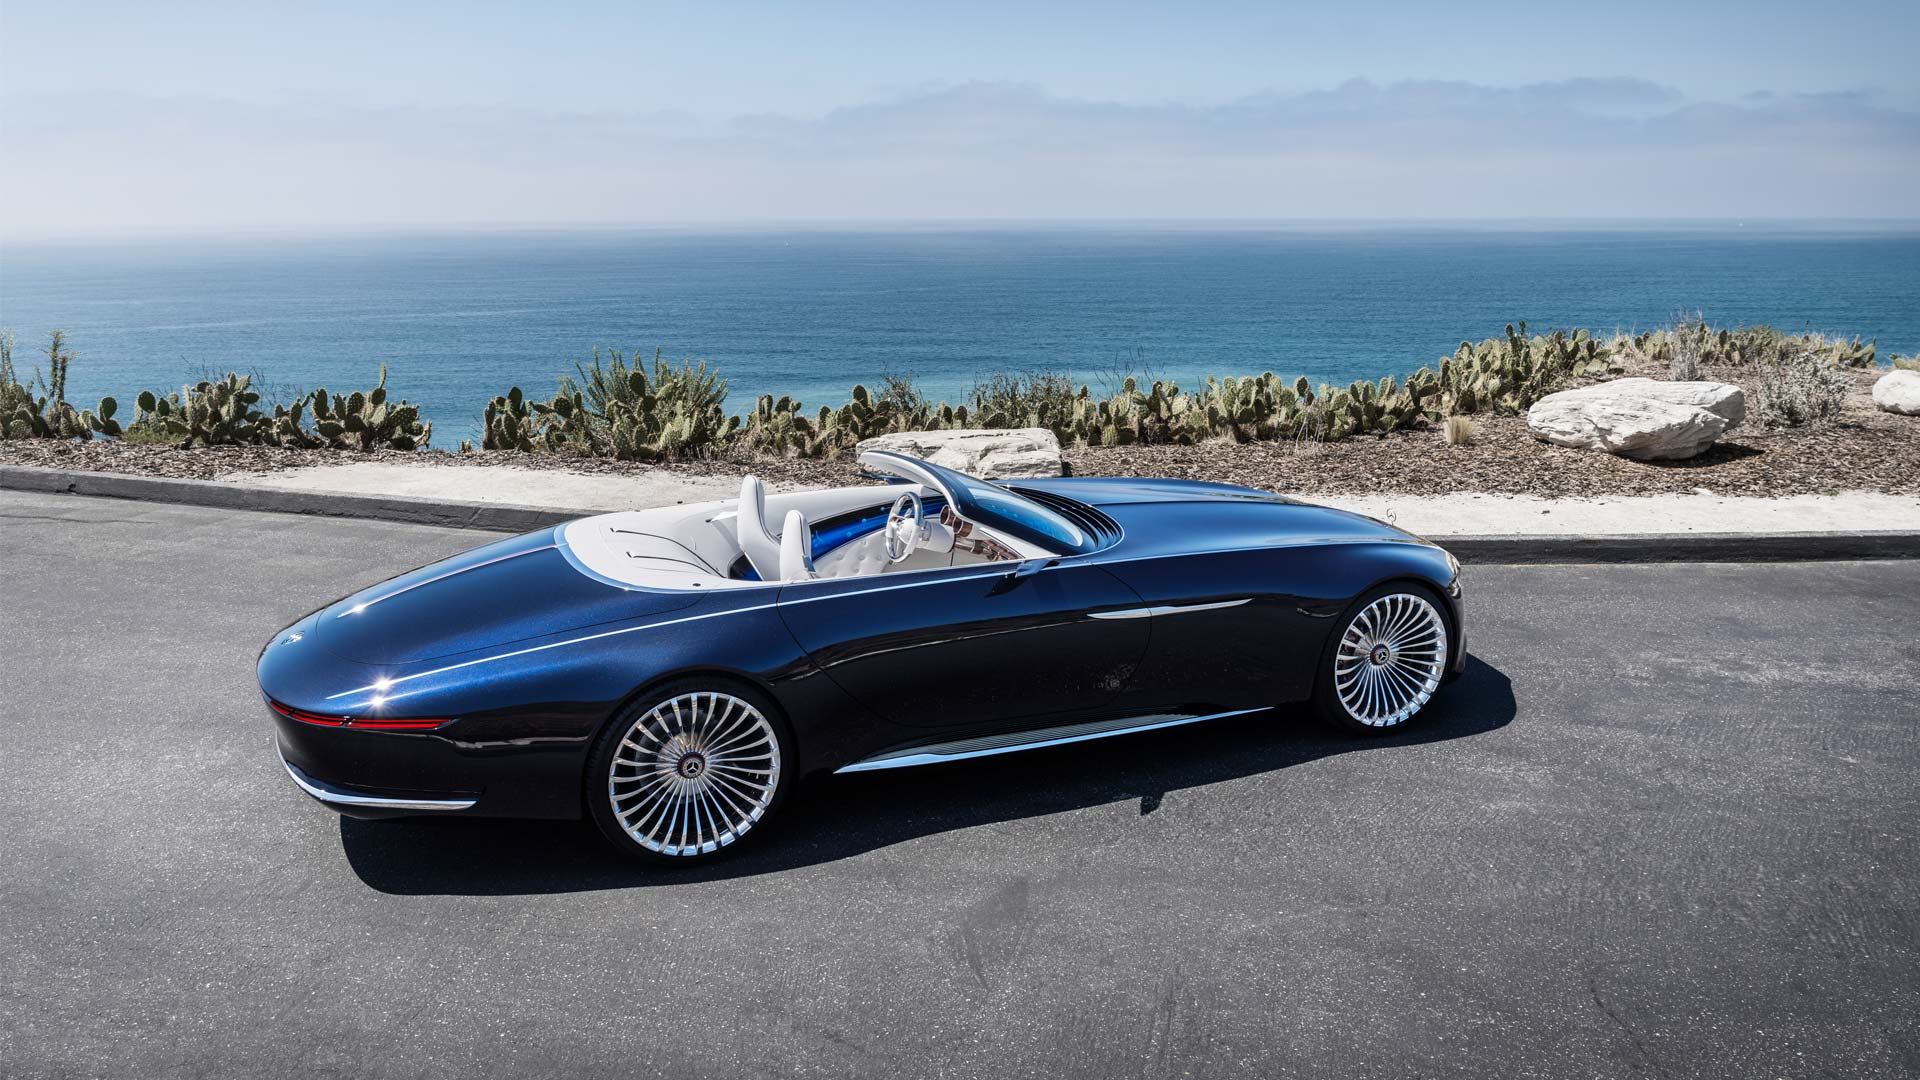 vision mercedes maybach 6 cabriolet looks gorgeous at the pebble beach autodevot. Black Bedroom Furniture Sets. Home Design Ideas